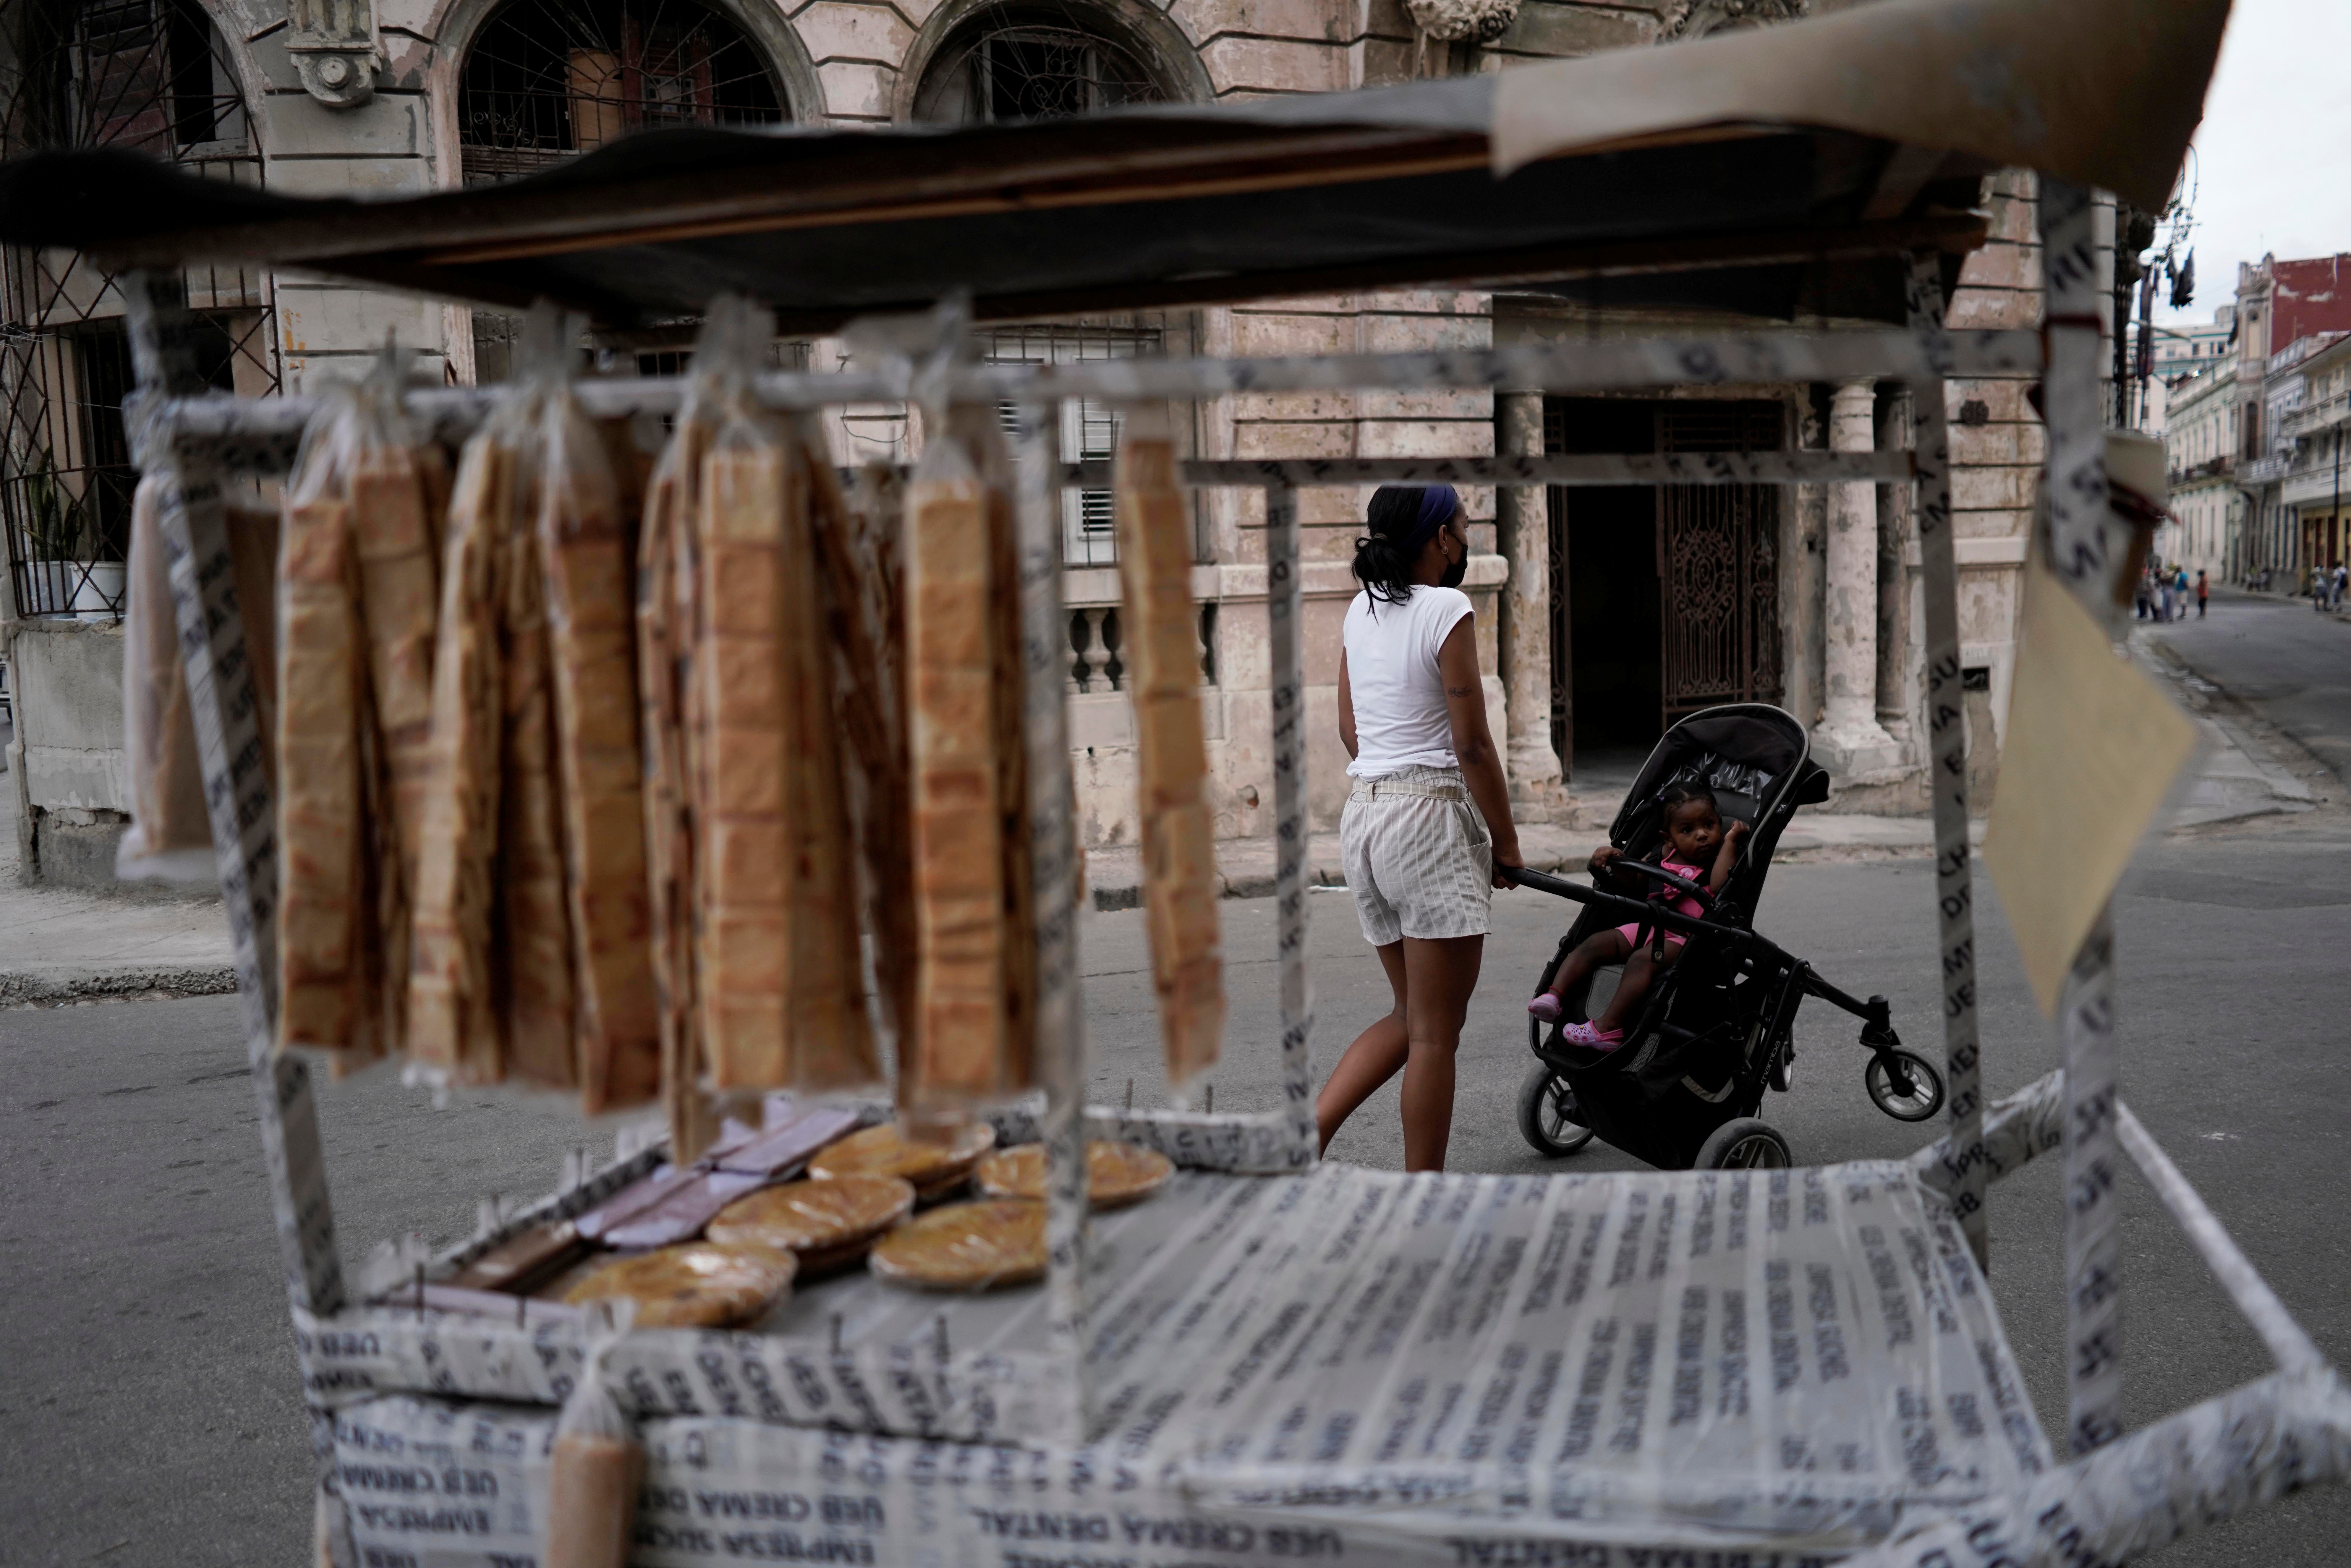 A woman walks past a cart selling biscuits in downtown Havana, Cuba, May 18, 2021. Picture taken on May 18, 2021. REUTERS/Alexandre Meneghini